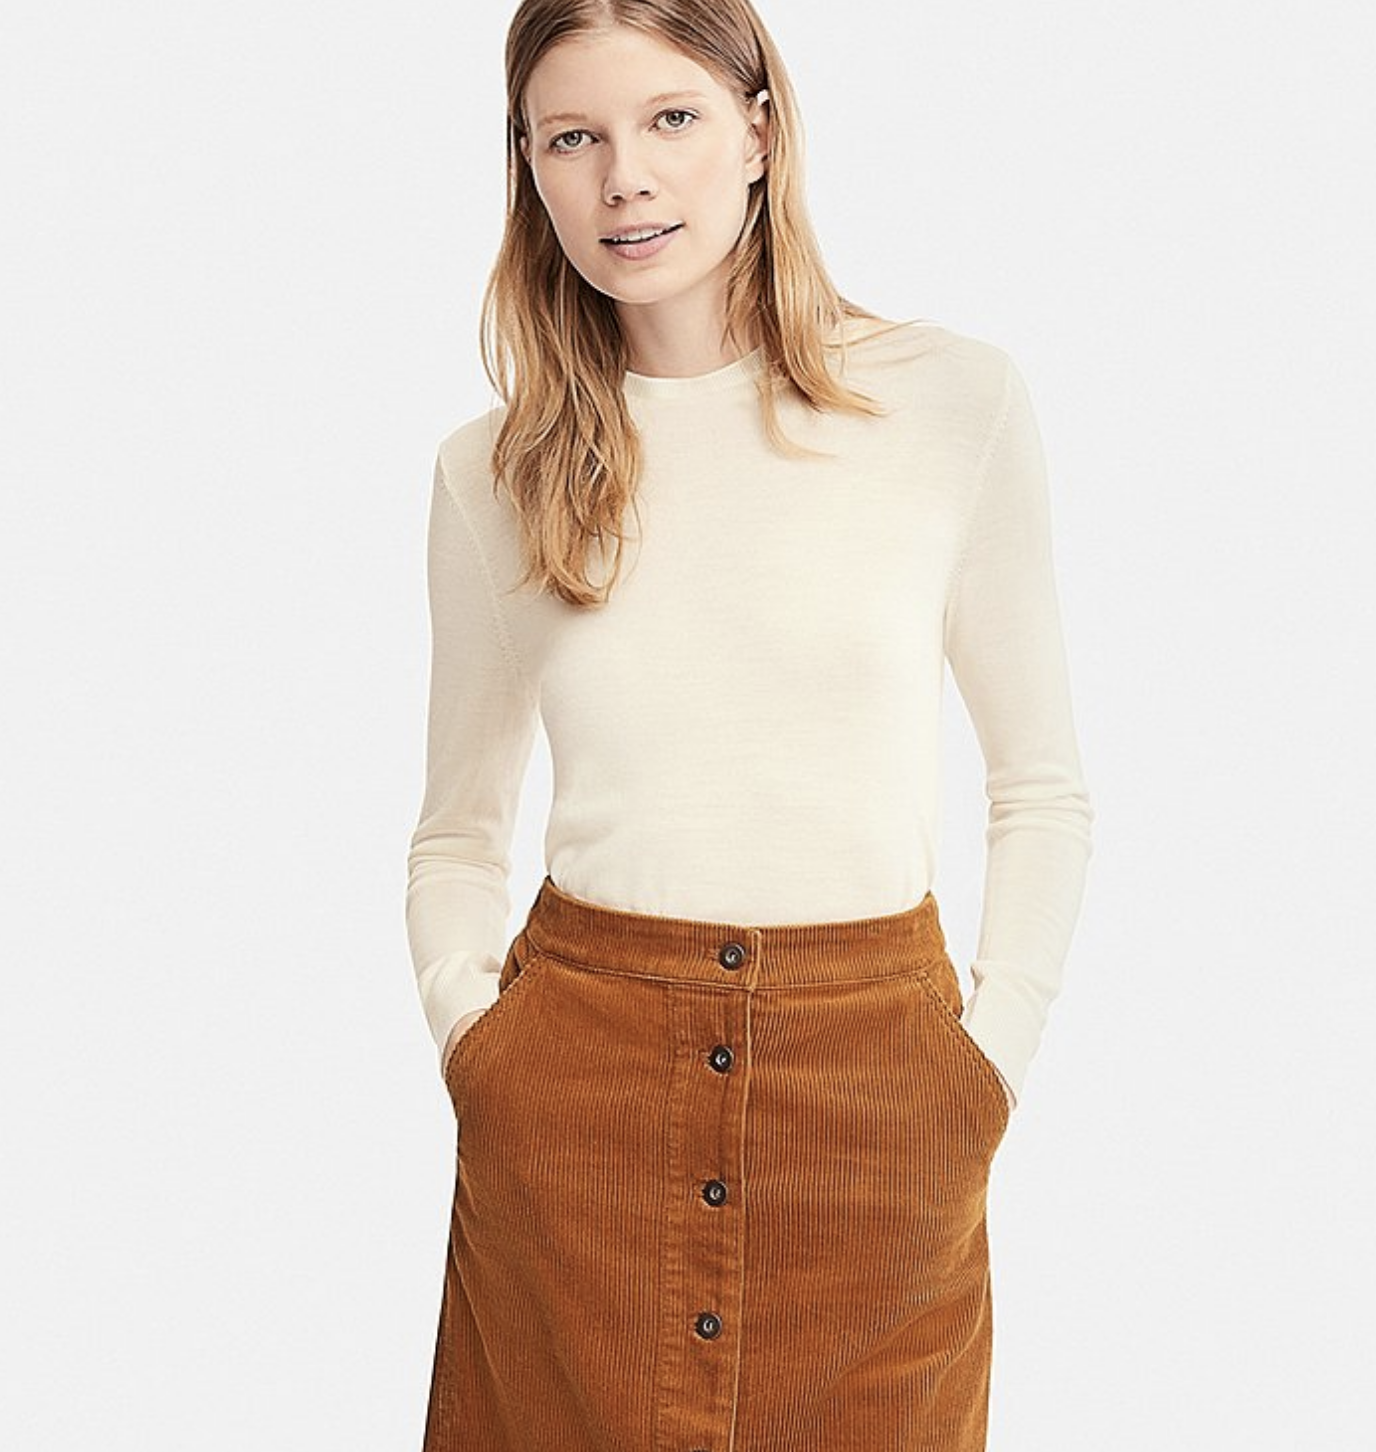 uniqlo thermal top lizzie edwards image consultant london